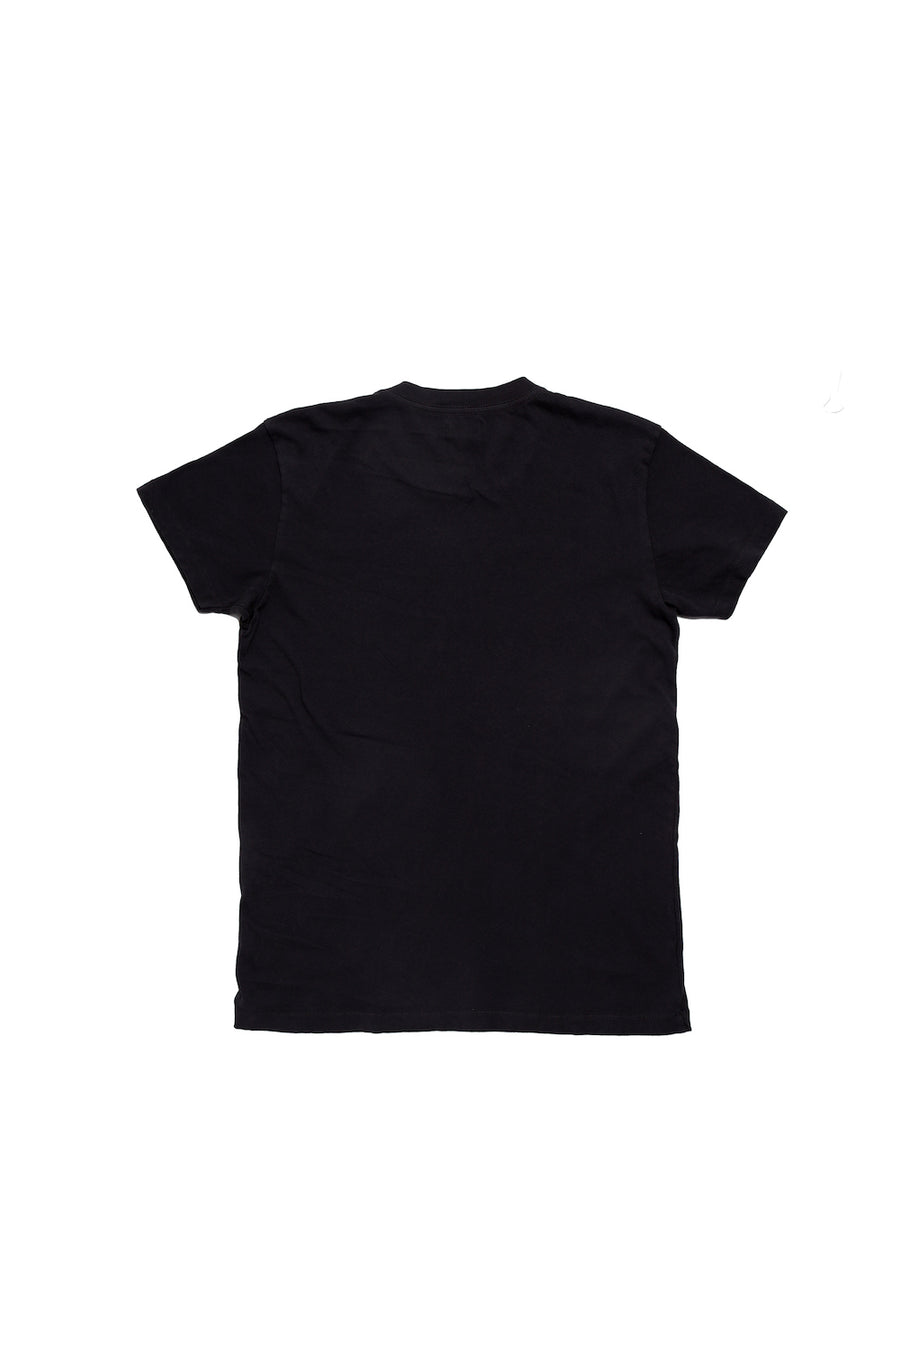 Kelly Cole Signature Short Sleeved Crewneck T Shirt - Jet Black